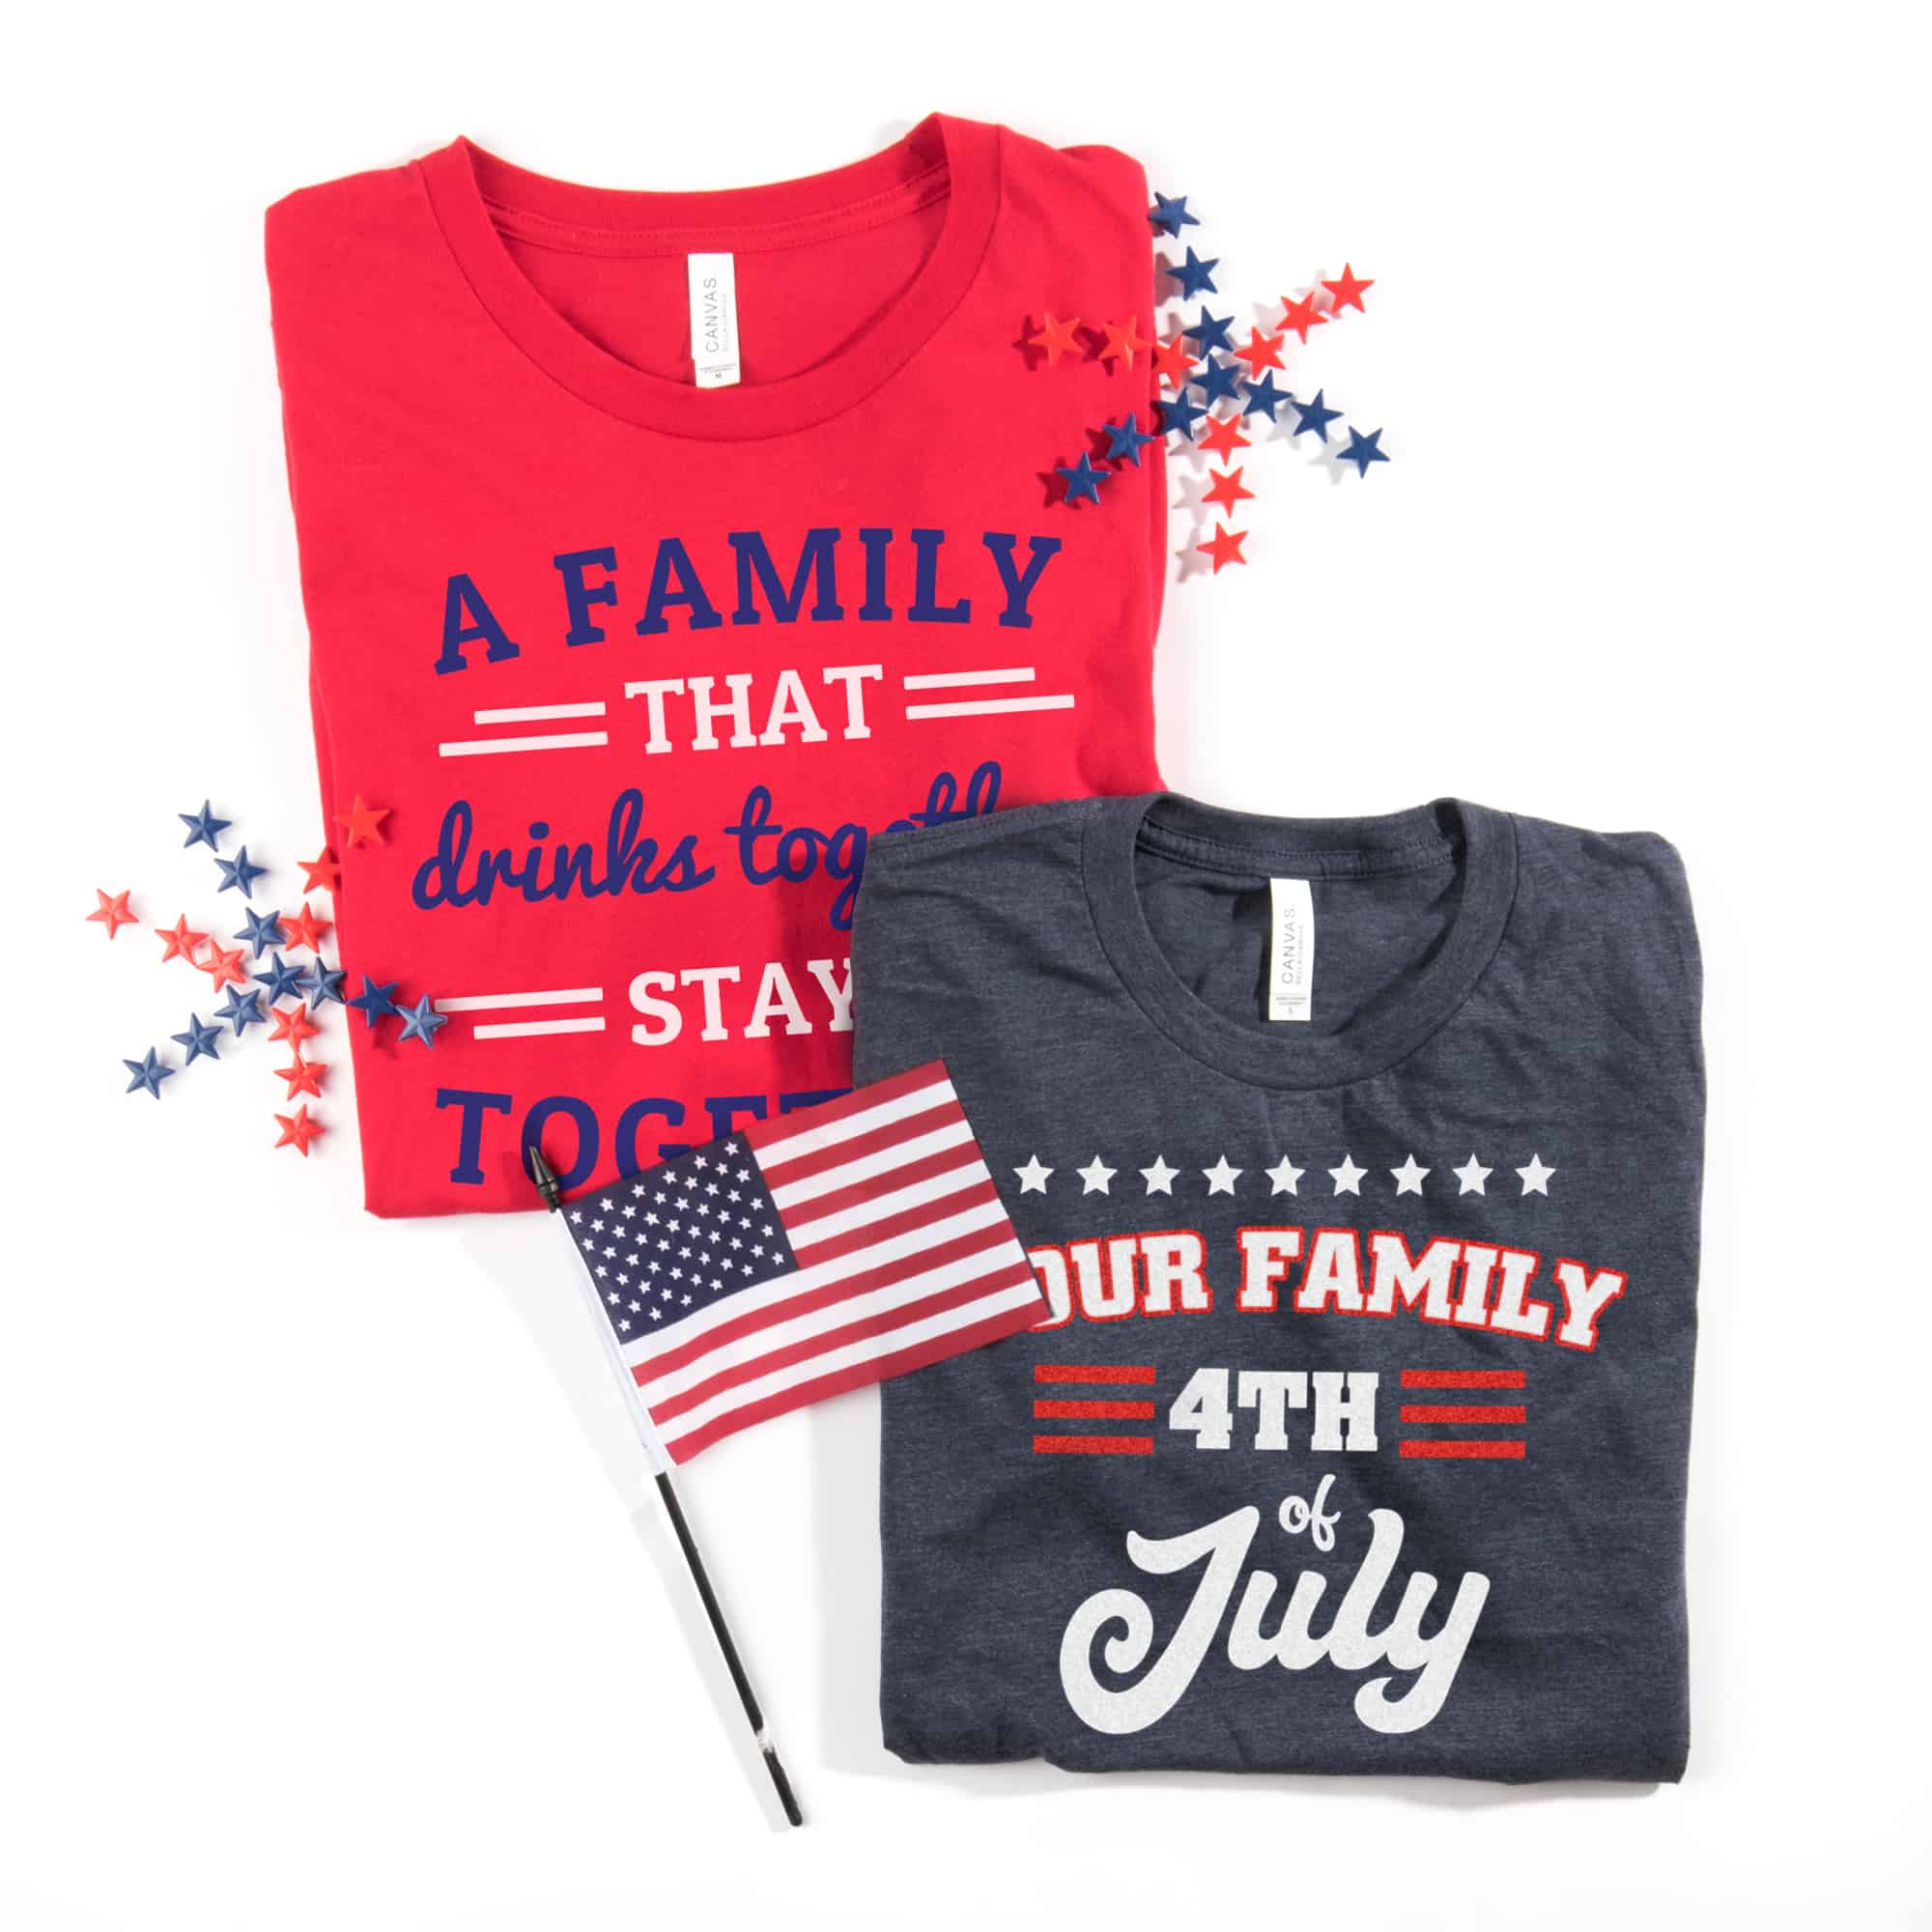 Examples of Fourth Of July themed t-shirts for a family.